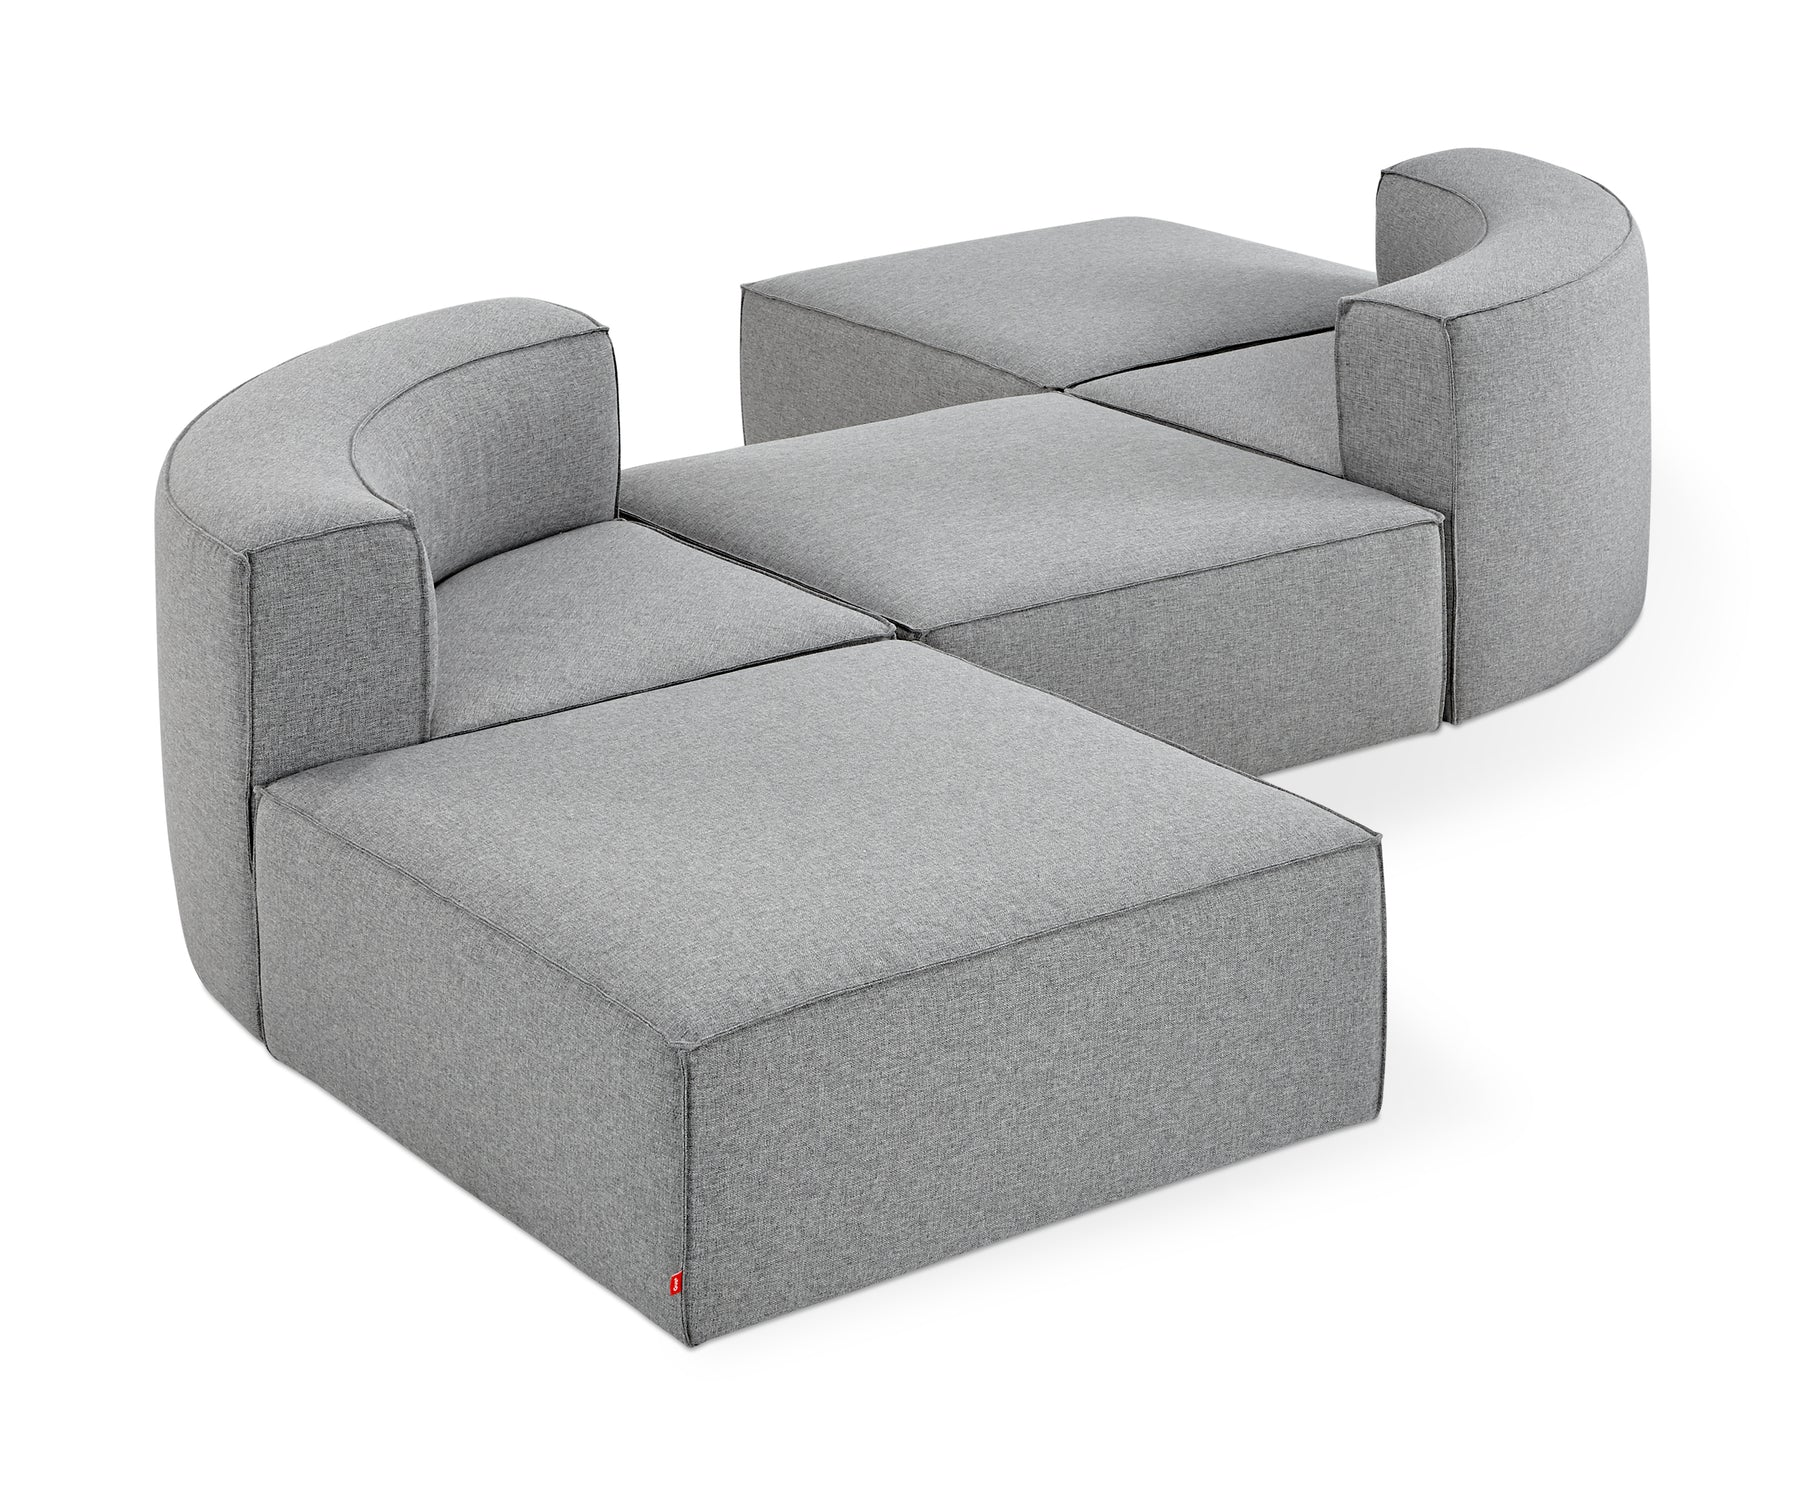 Mix Modular 5-Pc Seating Group A